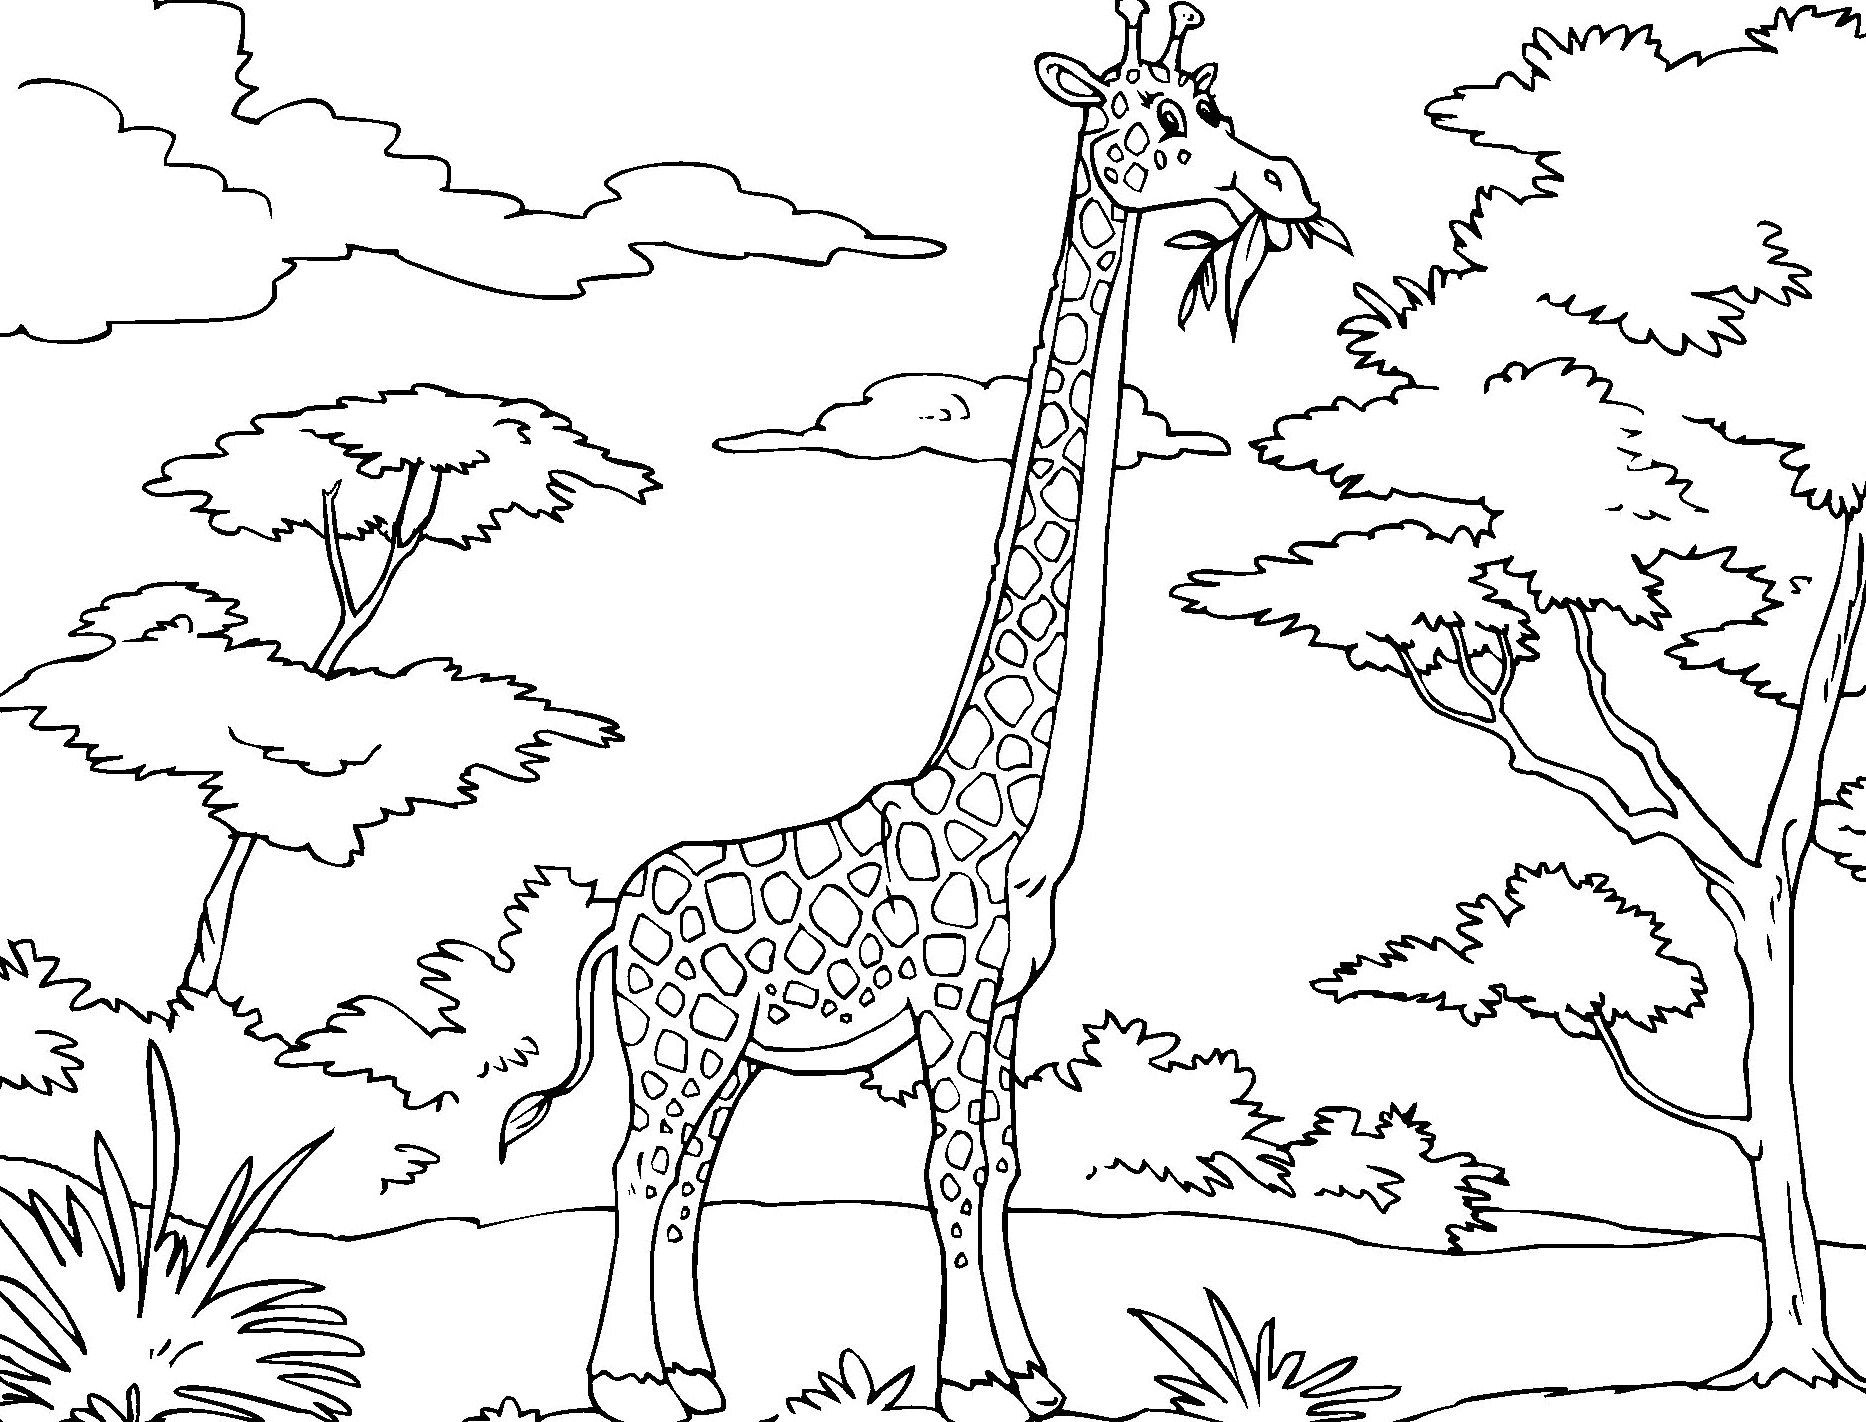 giraffe printable giraffe coloring pages - Giraffe Coloring Pages